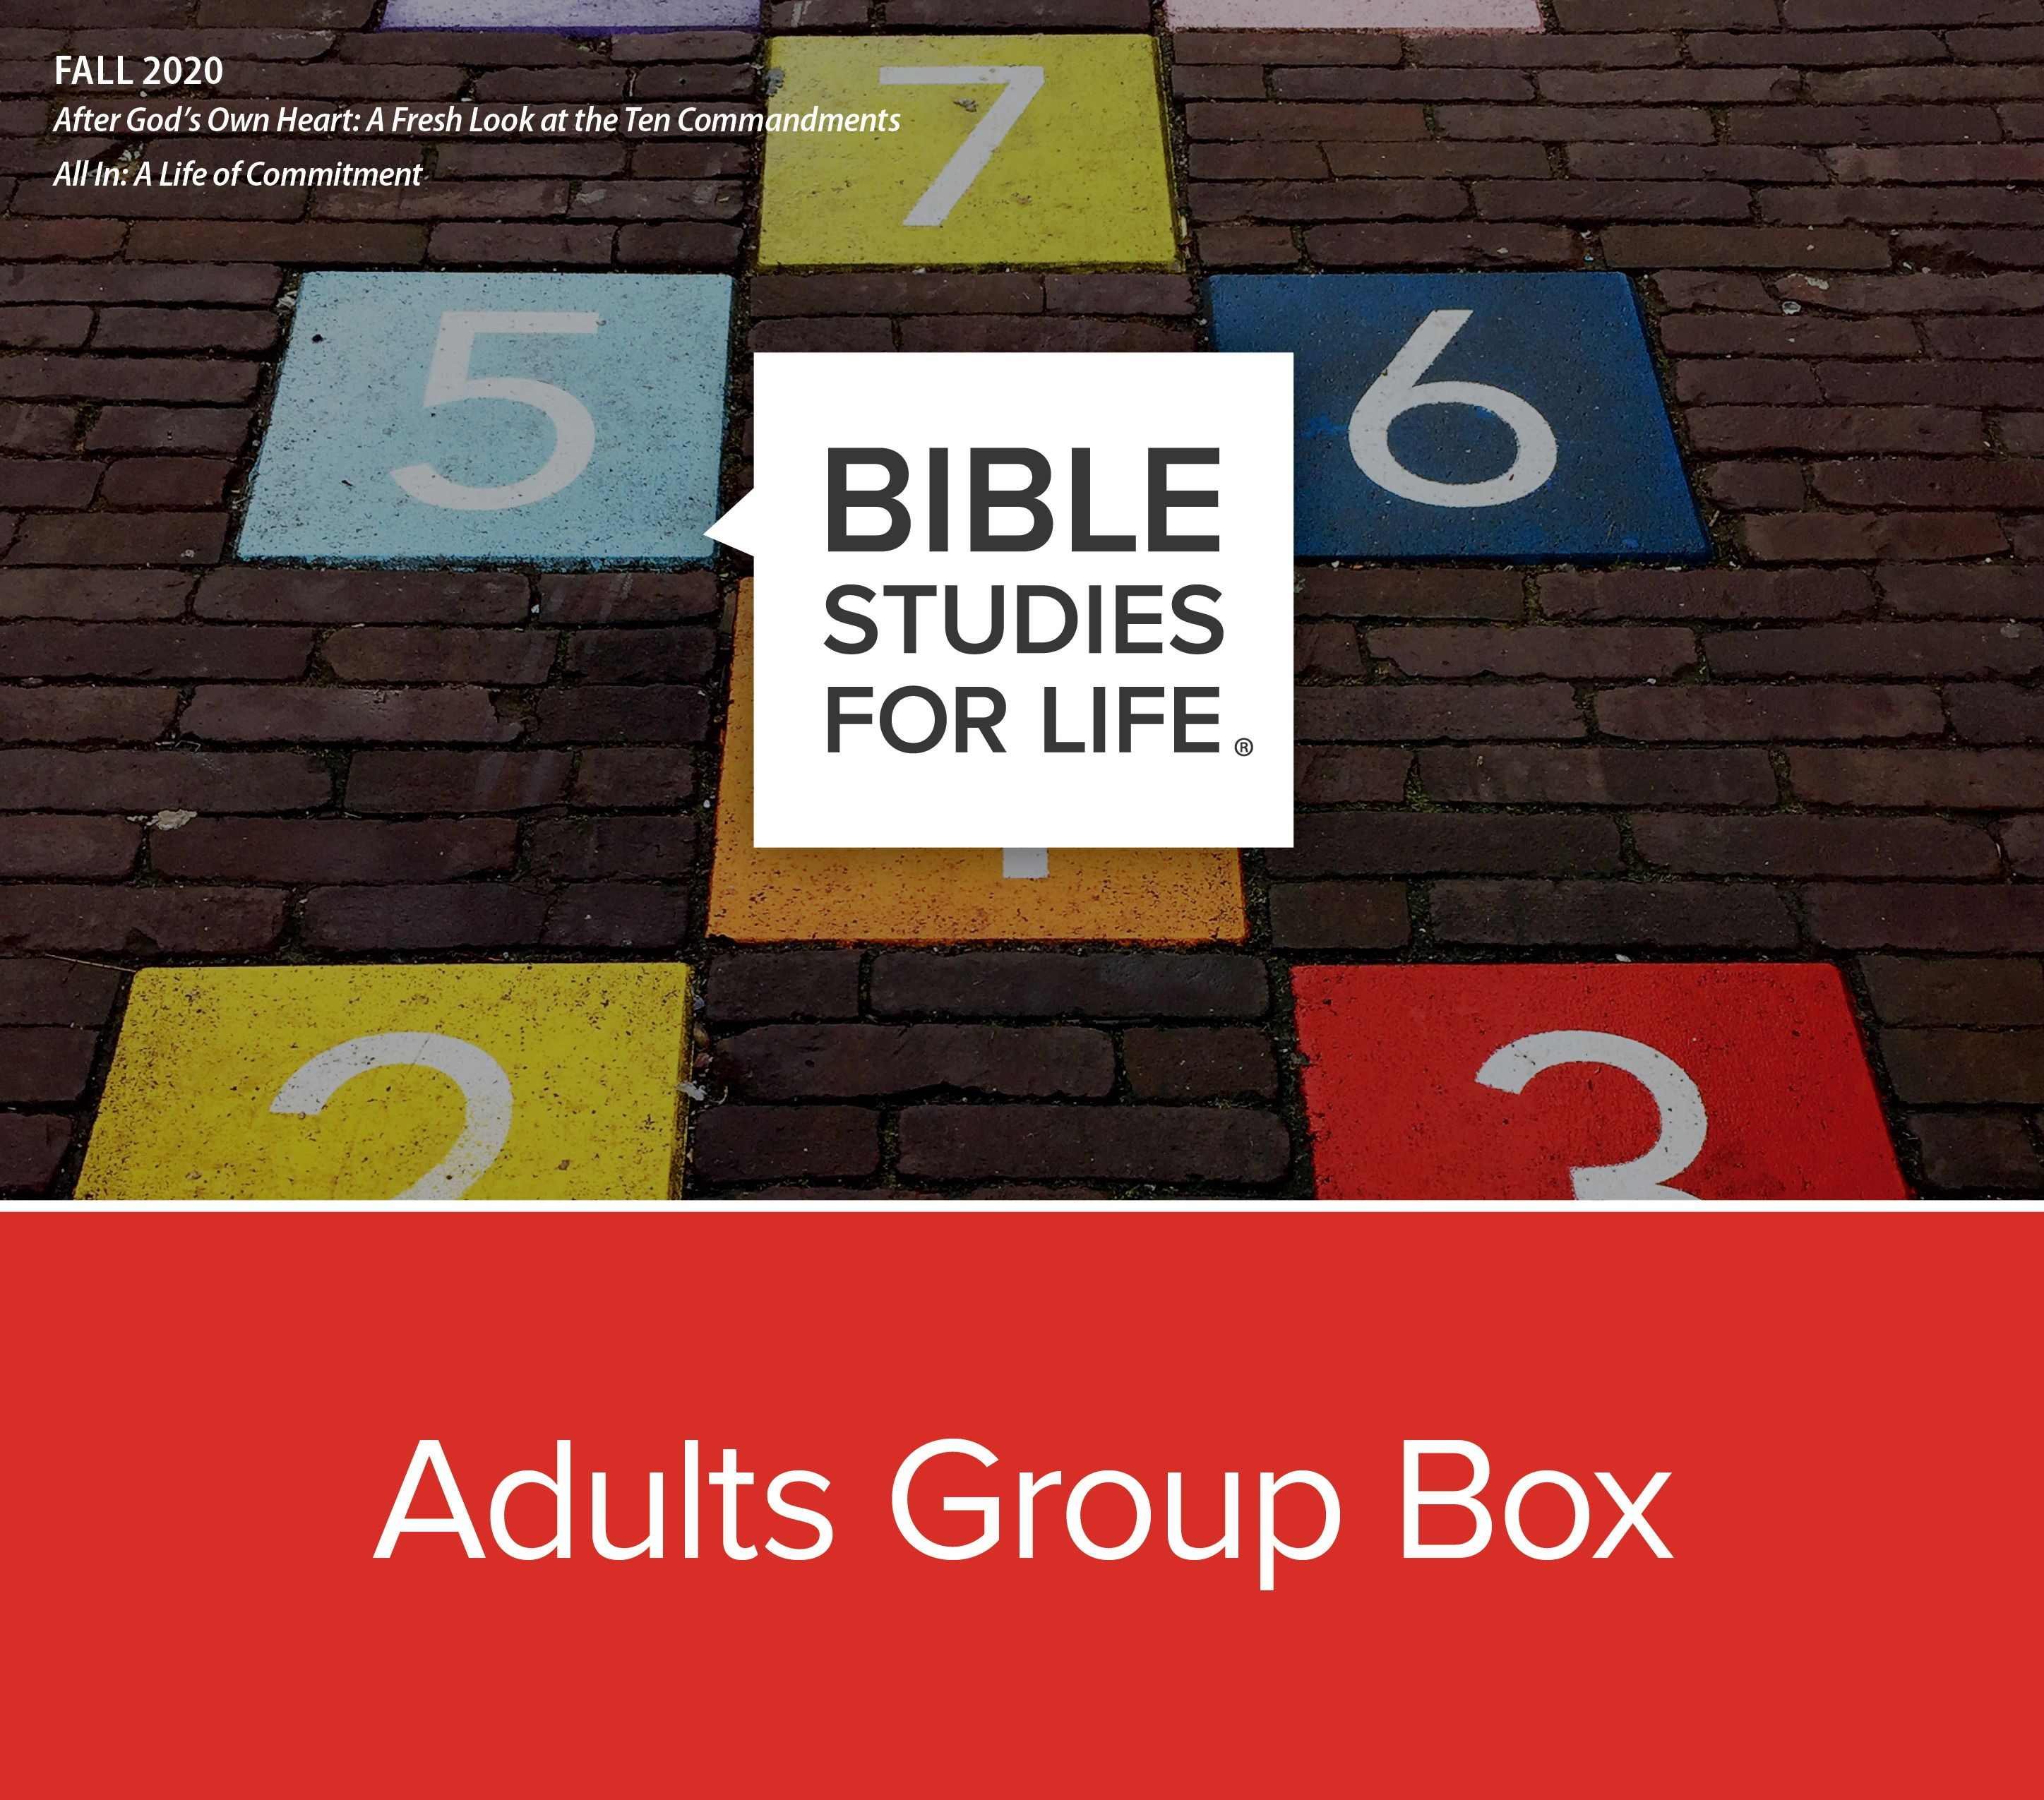 Bible Studies for Life Adults Group Box